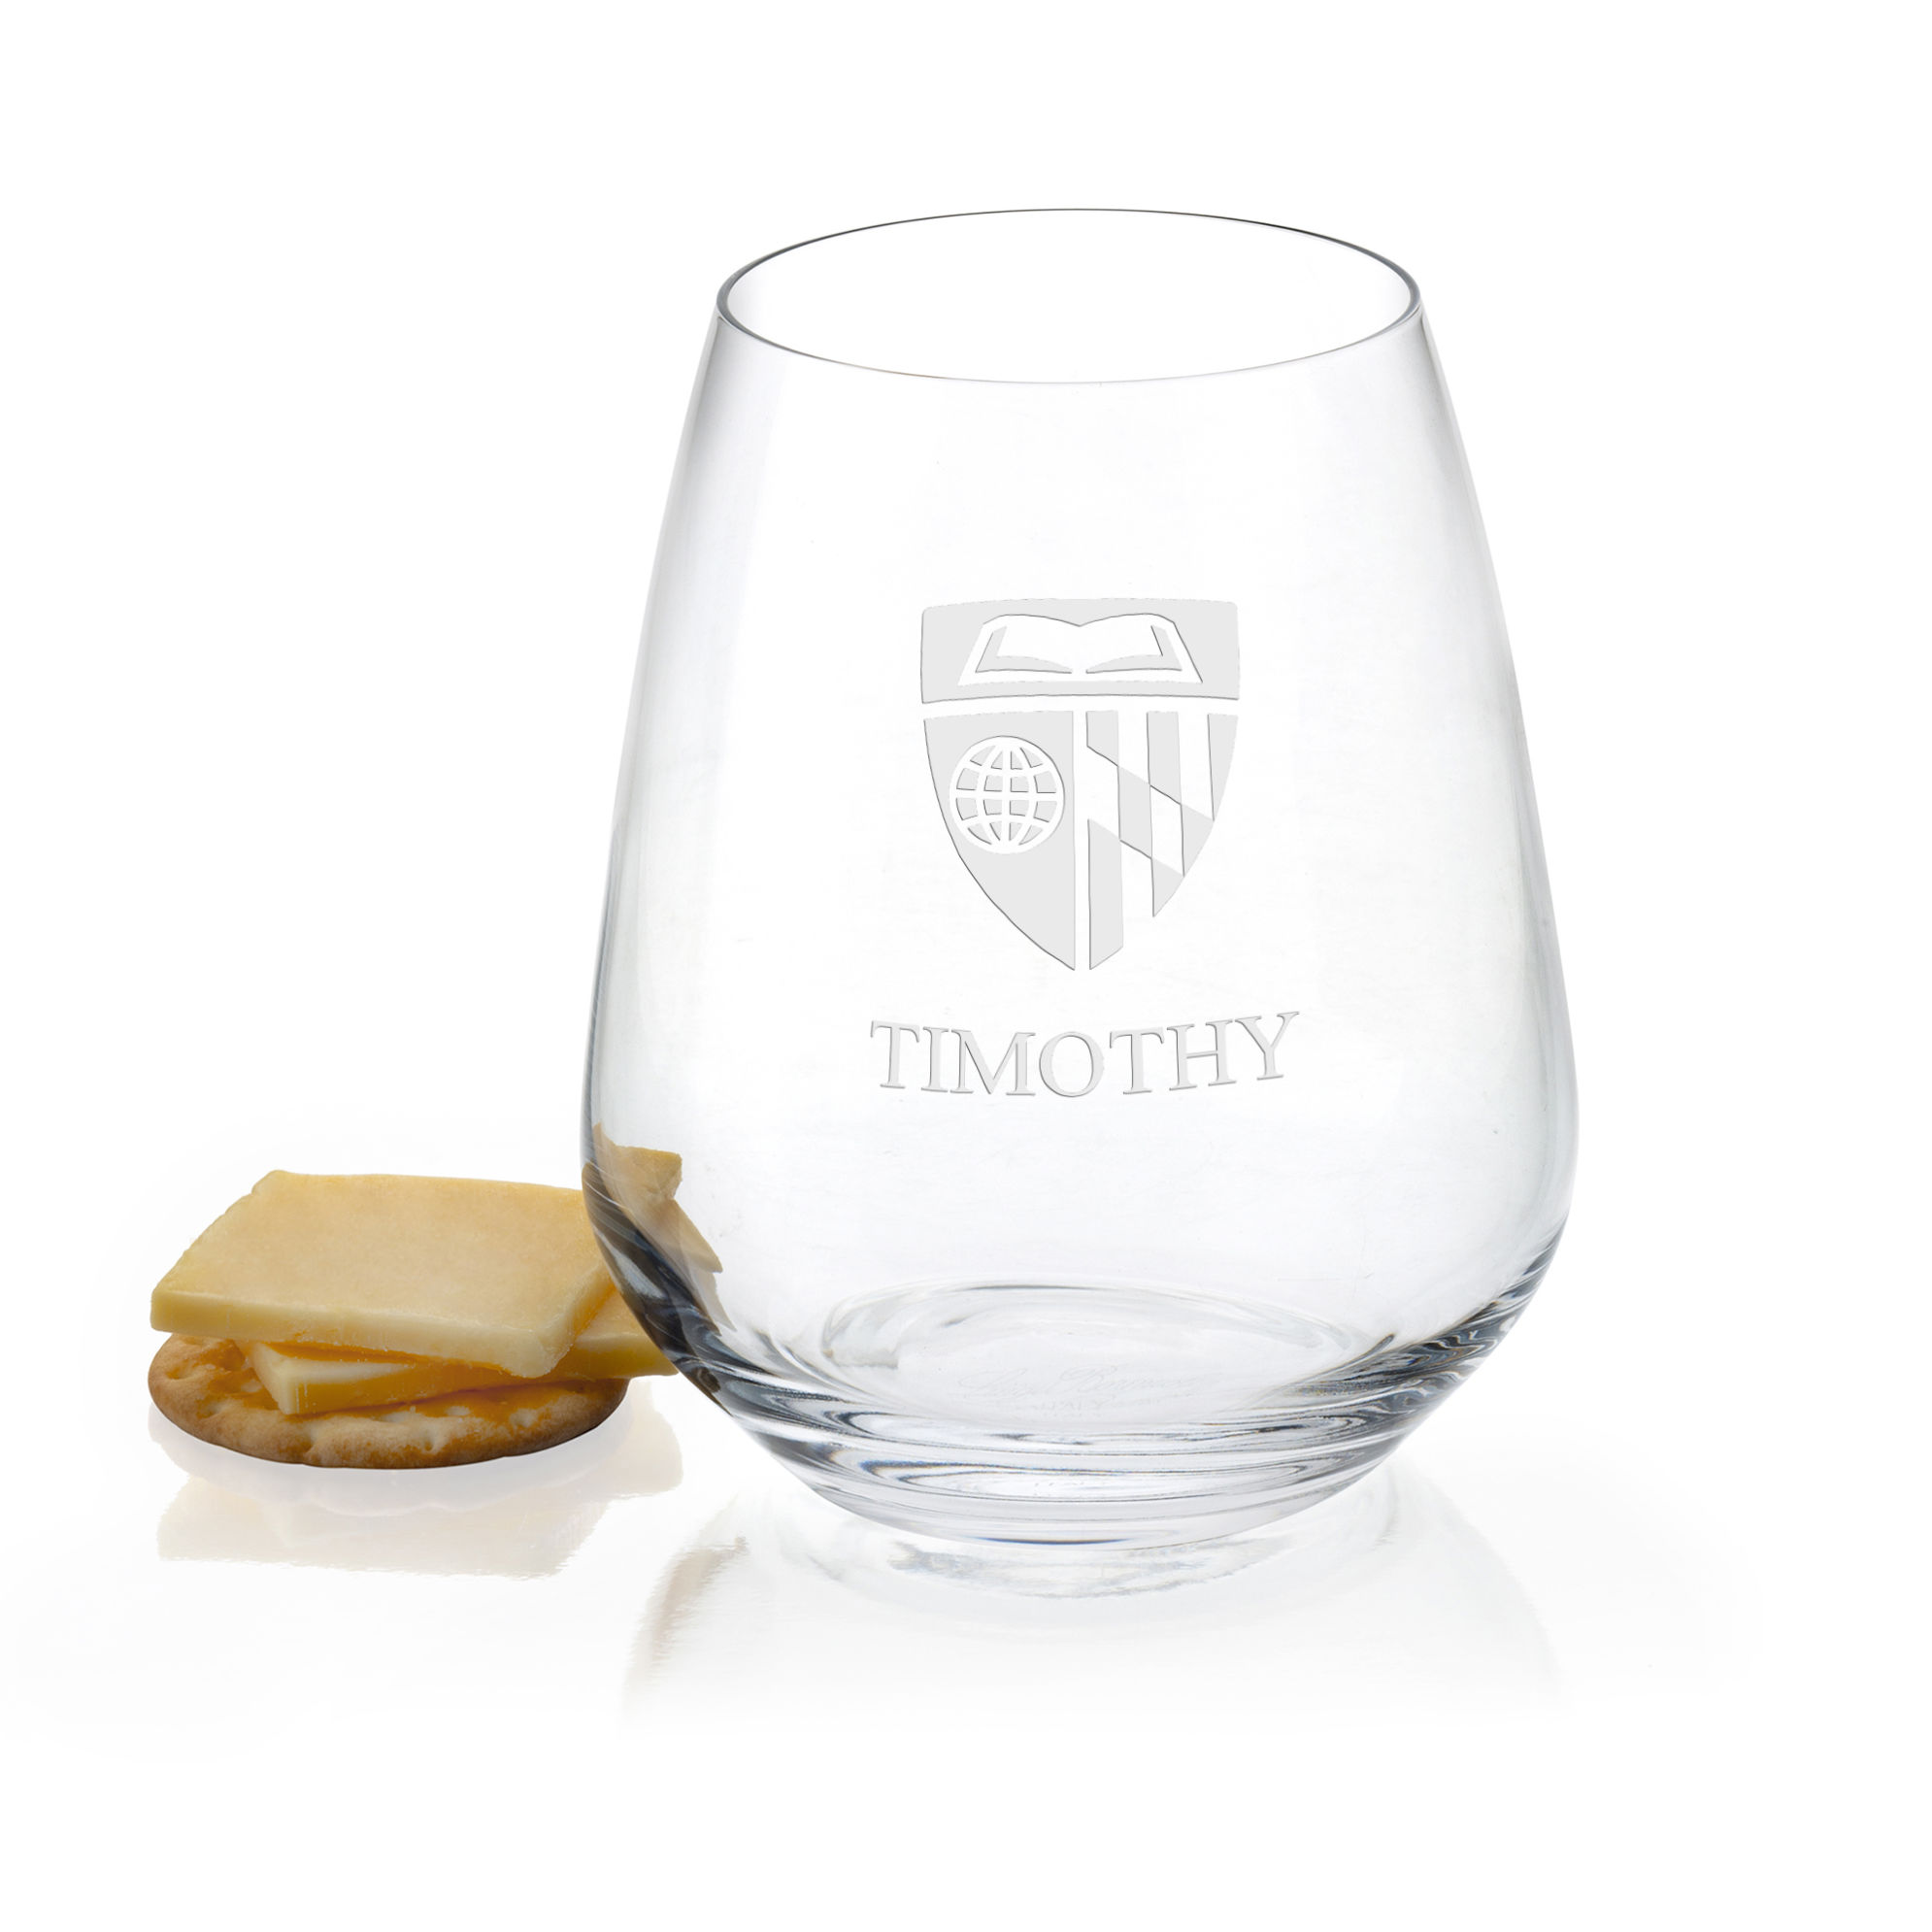 Johns Hopkins University Stemless Wine Glasses - Set of 2